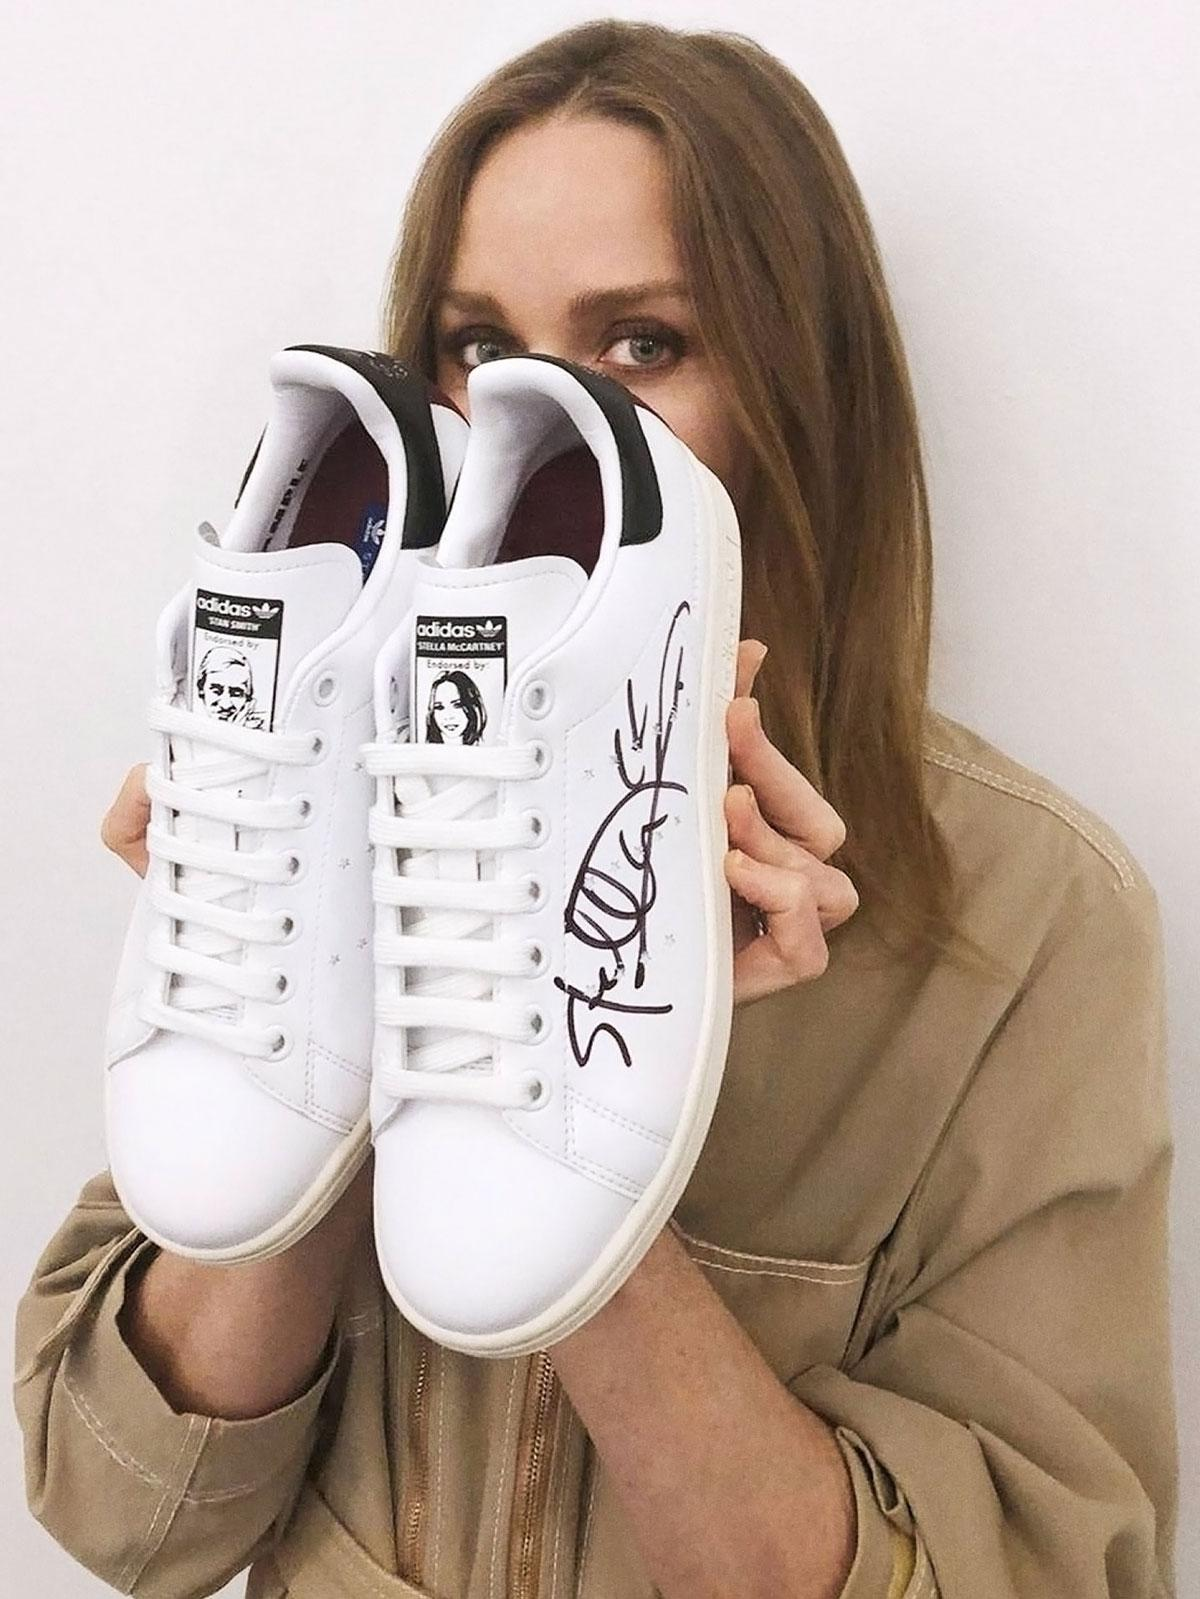 Adidas and Stella McCartney have collaborated on a vegan